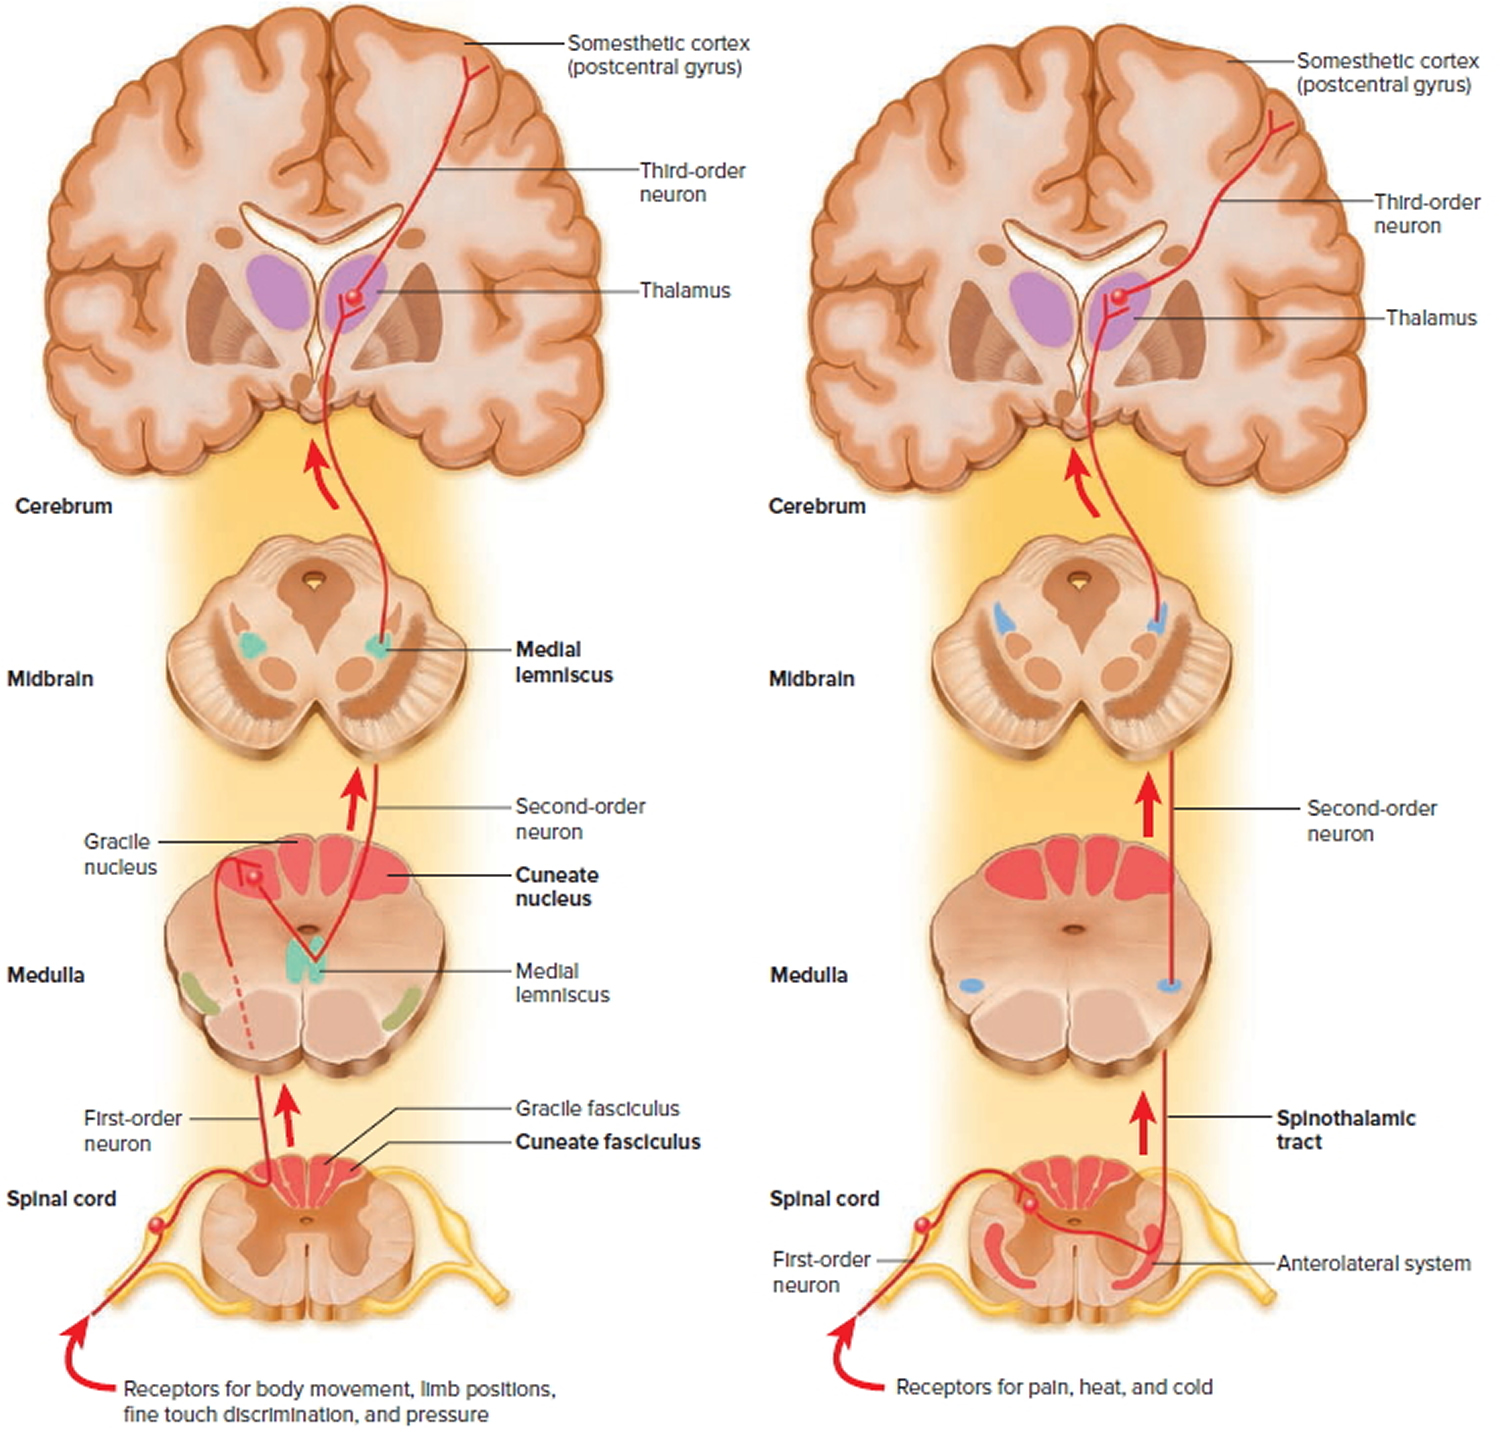 Spinal Cord Anatomy - Parts and Spinal Cord Functions